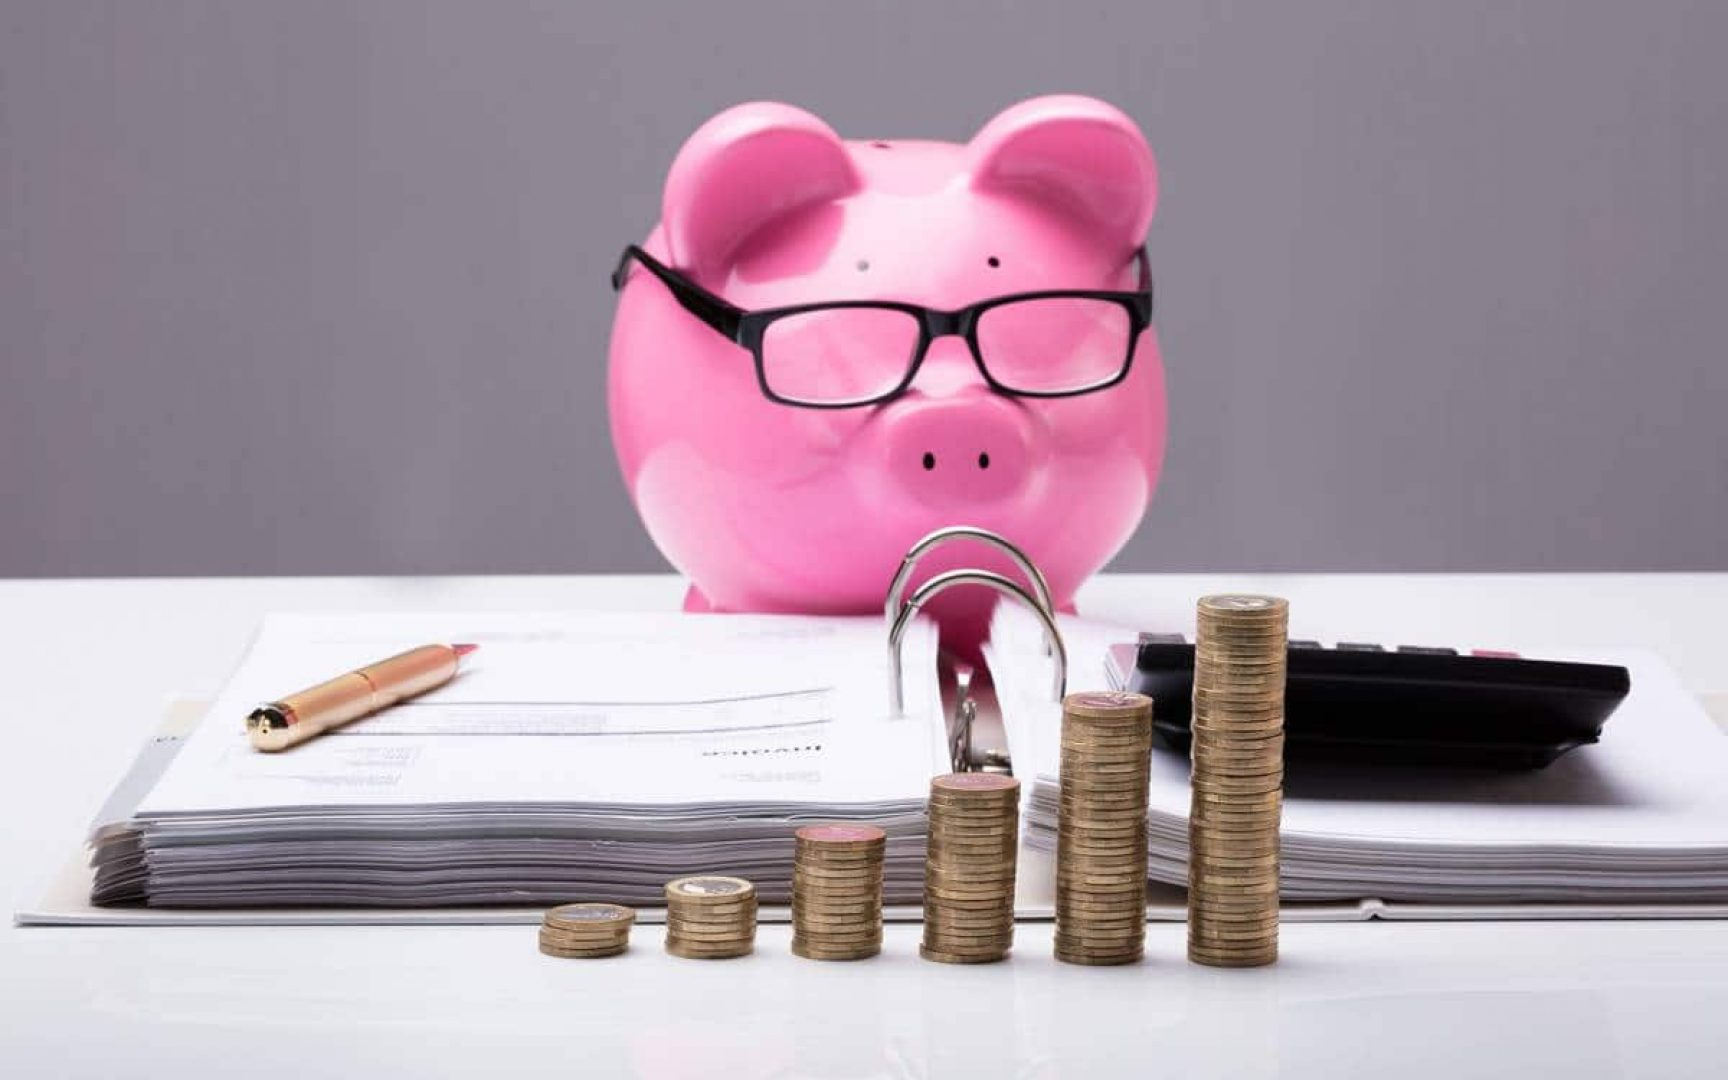 Piggy bank wearing glasses looking at paper and a calculator with stacks of coins in front